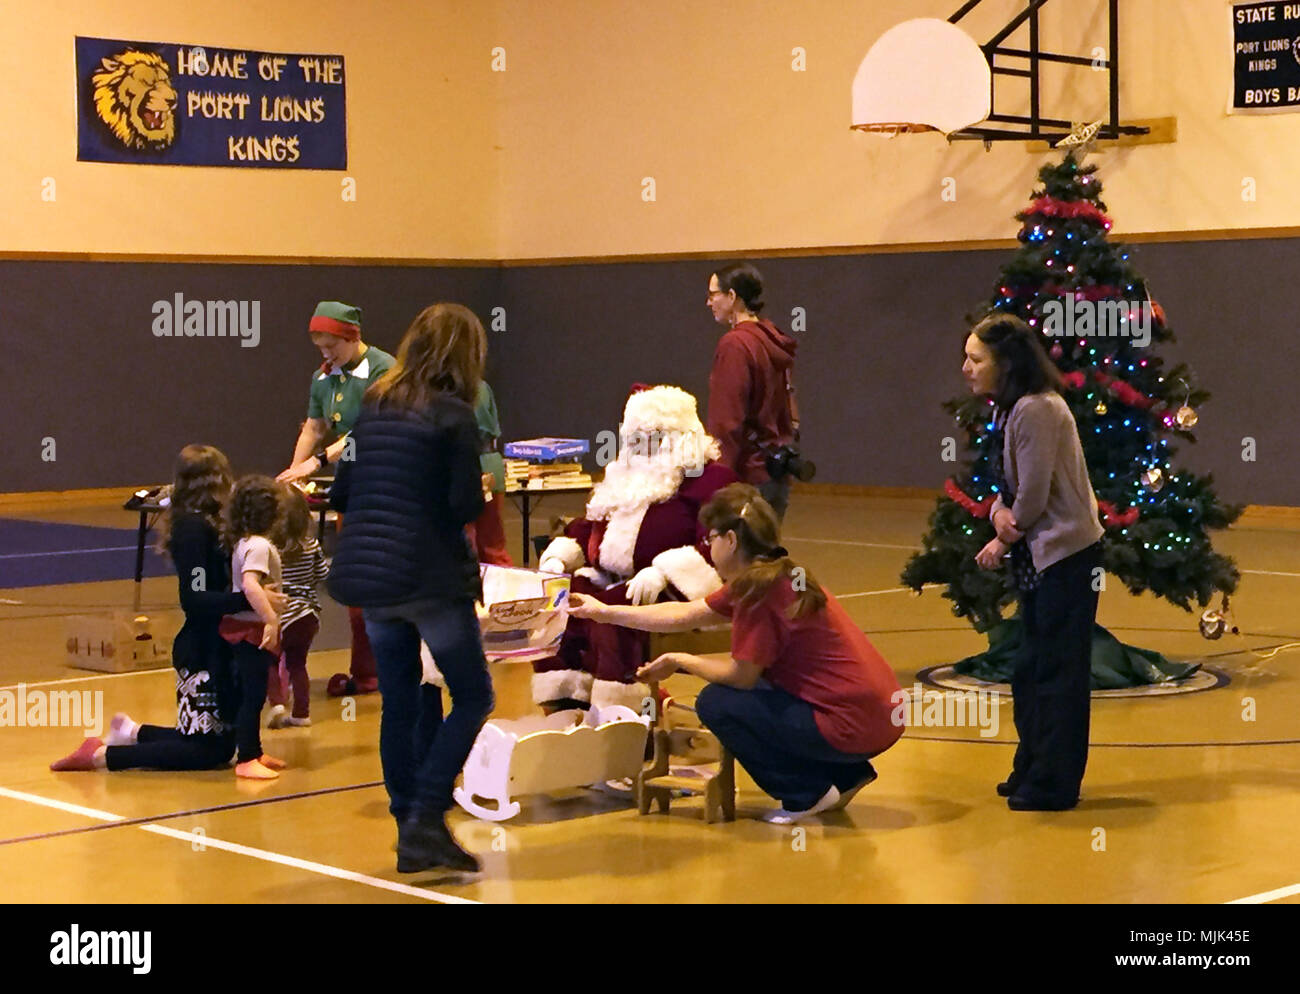 santa claus teachers and parents help with handing out christmas presents to the port lions children at the the port lions public school gym in port lions